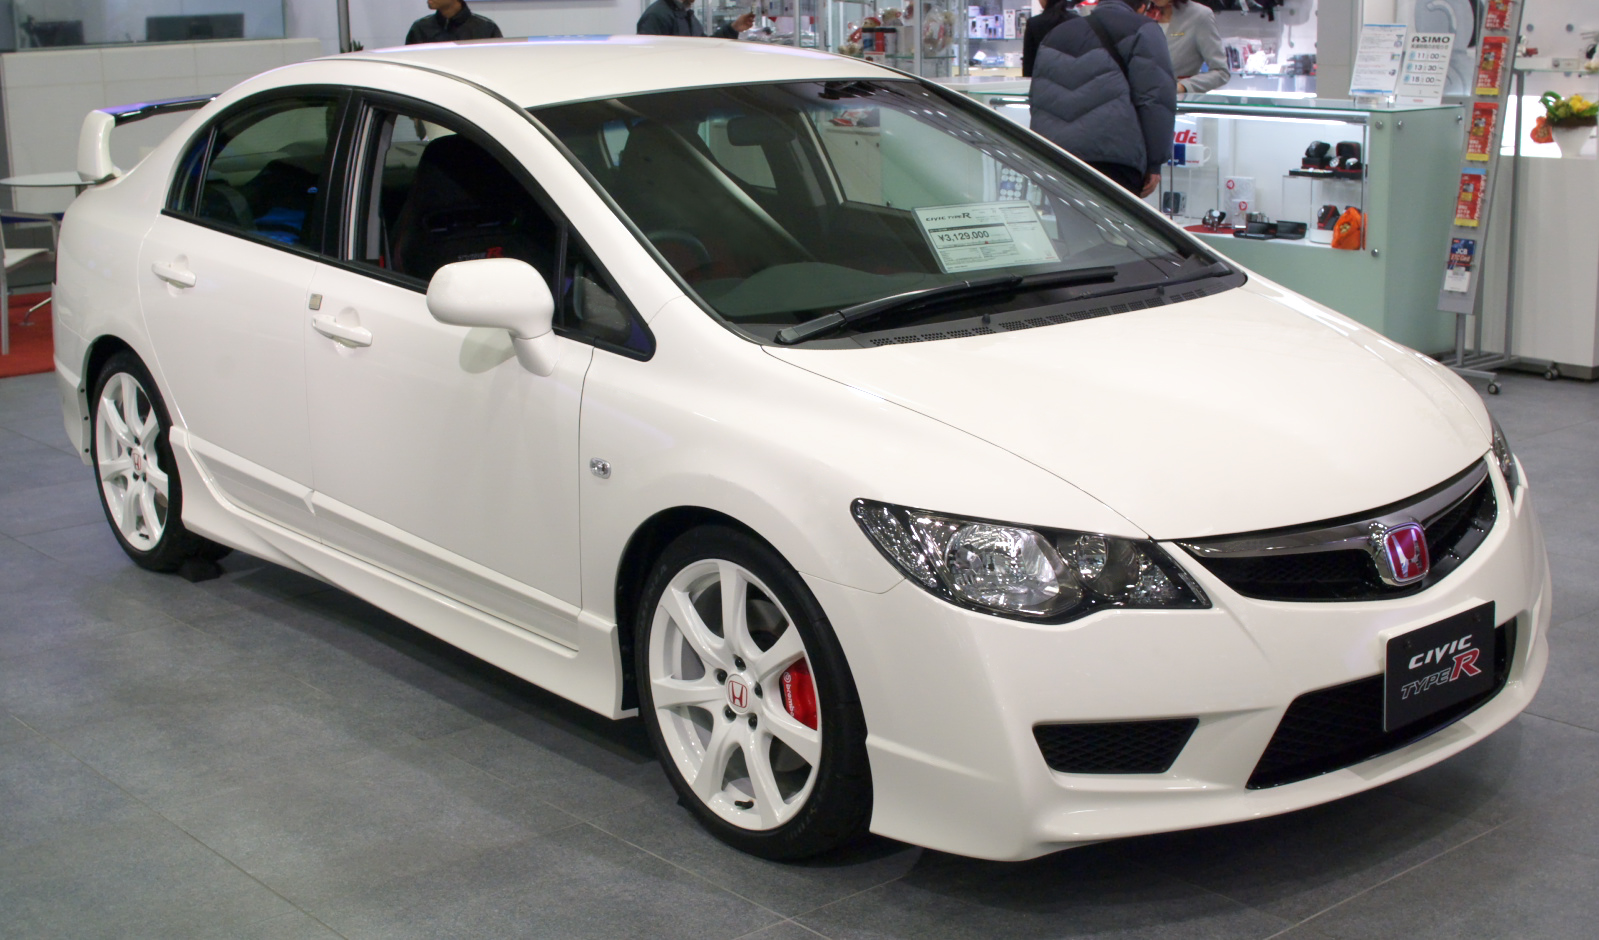 Honda Civic Type R - Wikipedia on acura tsx, honda cr-z type r, new honda suv, mitsubishi lancer evolution, new honda crv, new honda supra, new acura type r, honda prelude, honda cr-x, acura rsx, new honda type r 2015, honda accord, new honda hr, the next type r, nissan silvia, fn2 type r, honda civic si, honda nsx, hondacivic type r, new honda s2000, honda cr-z, honda civic hybrid, red type r, honda integra, honda cr-v, new integra type r, nissan skyline gt-r, honda accord type r, honda city, toyota ae86, new honda audi, honda nsx type r, acura csx, new civic sport, honda fit, new honda jdm, new honda vtec, new honda accord, eighth generation honda civic, honda s2000,